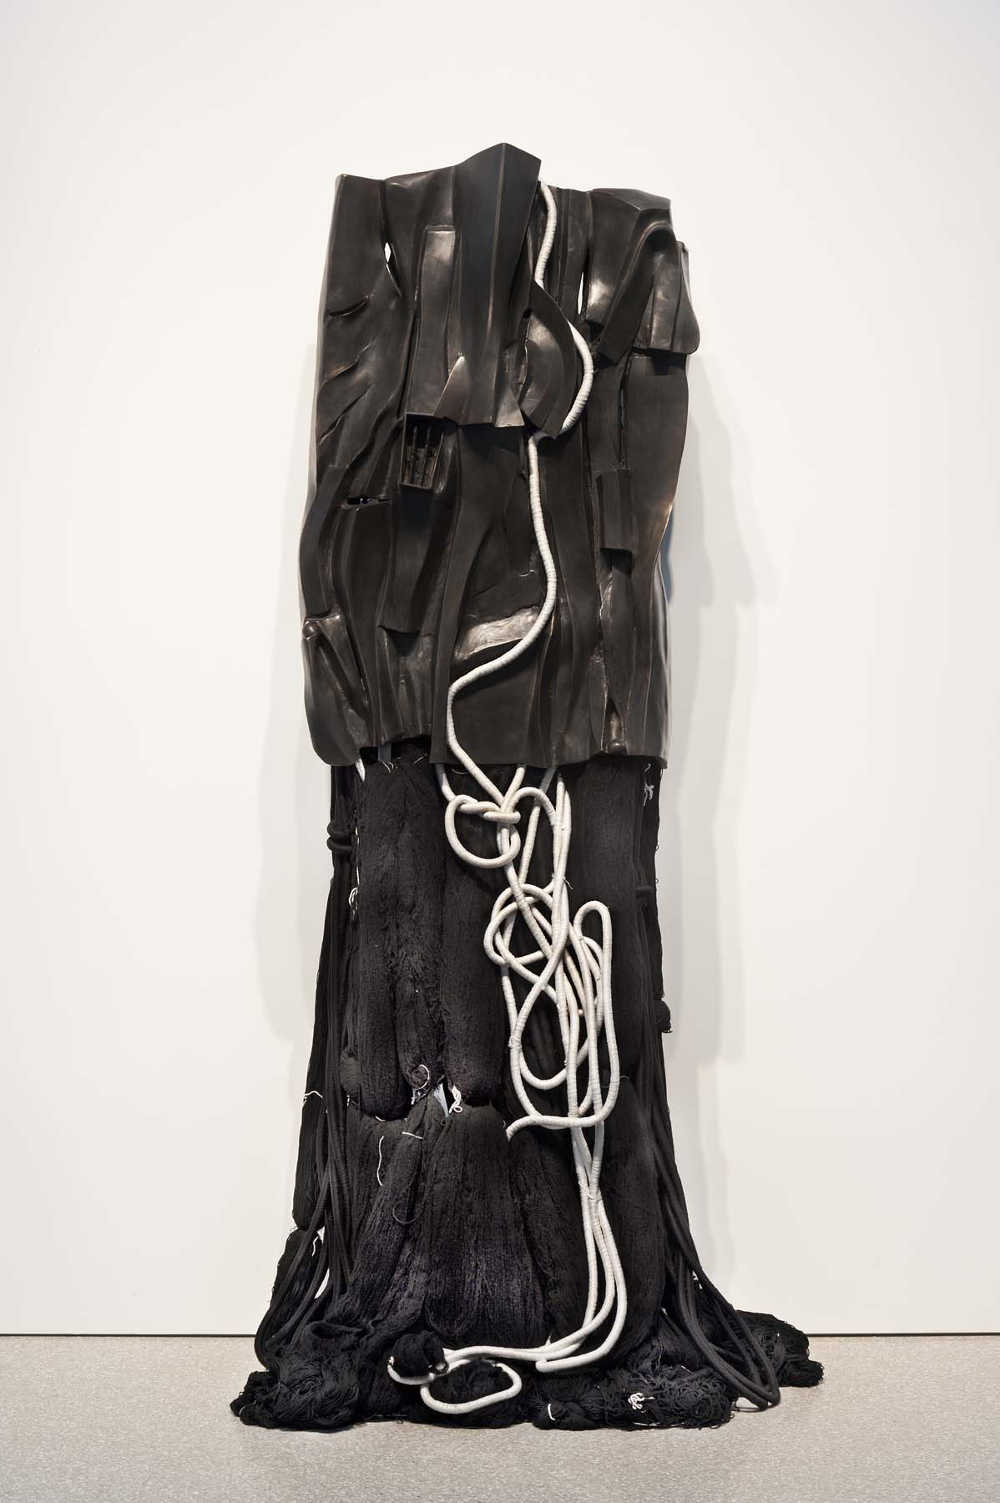 Barbara Chase-Riboud (b.1939), Malcolm X #13, 2008. Black bronze, silk, wool, linen, and synthetic fibers 86